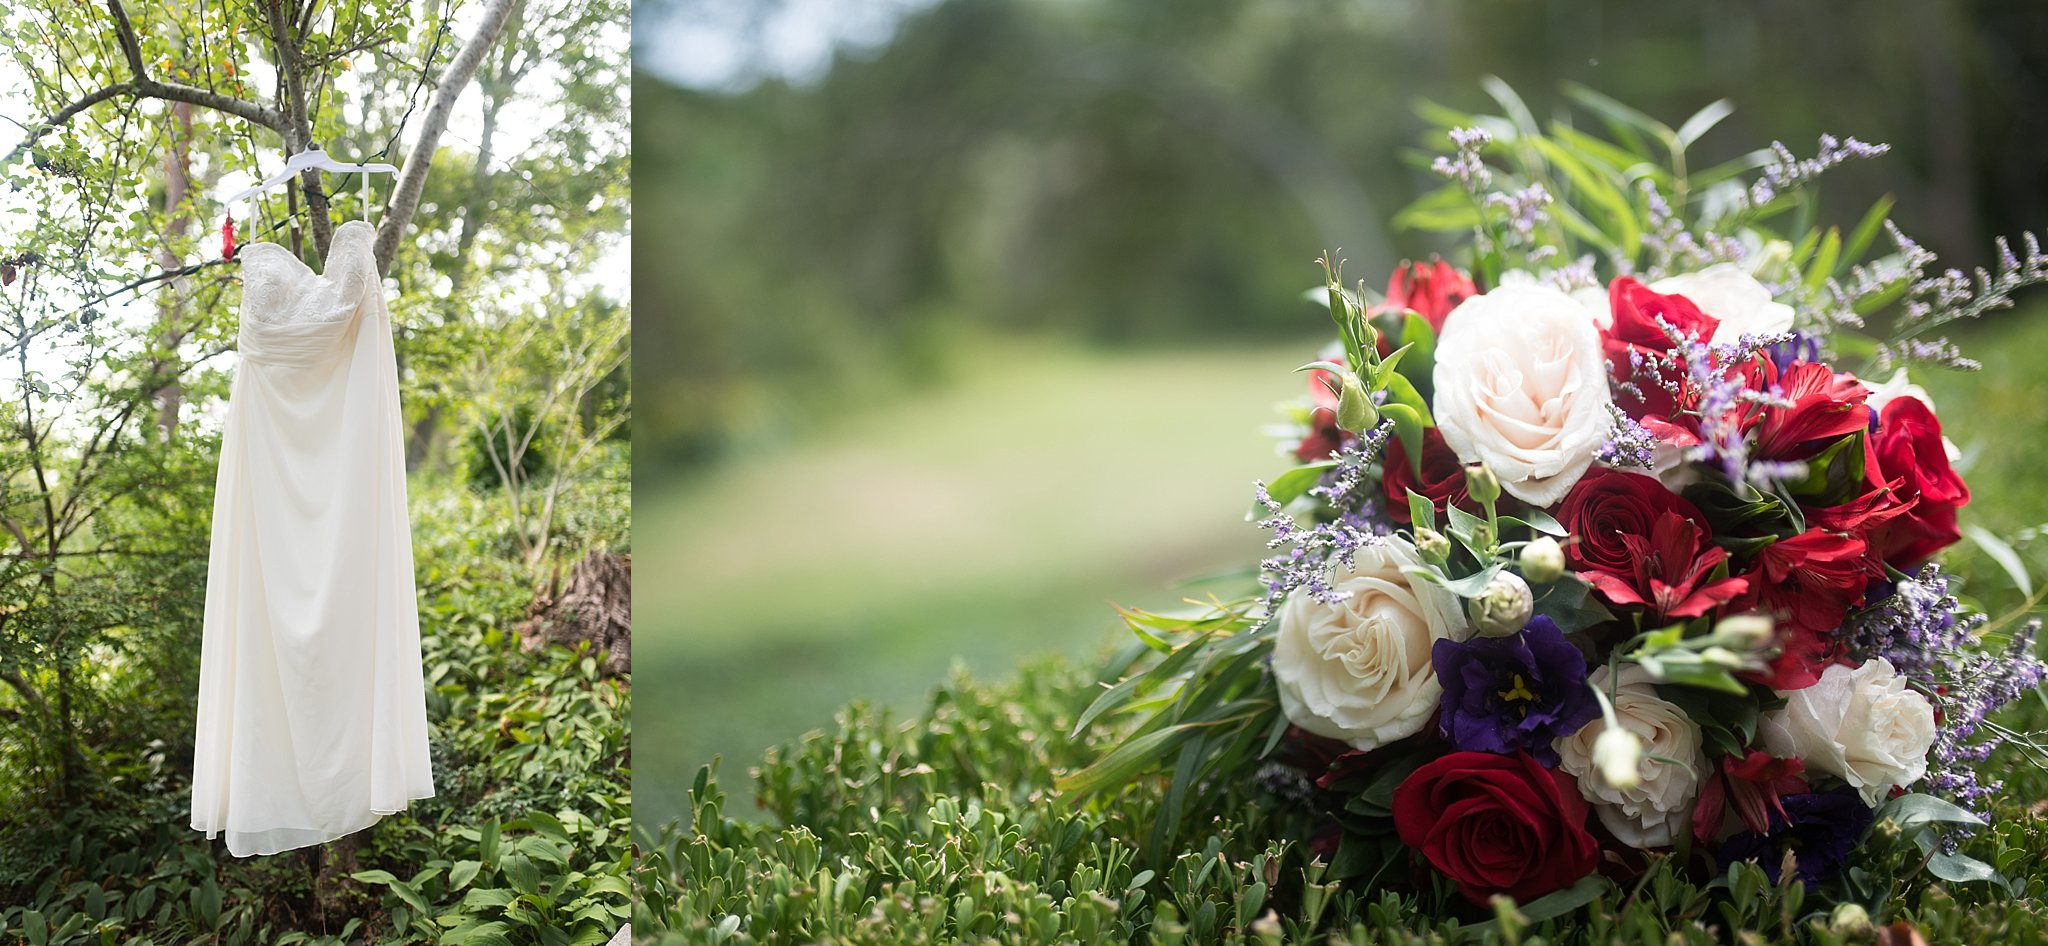 Rustic wedding at overbrook house.jpg